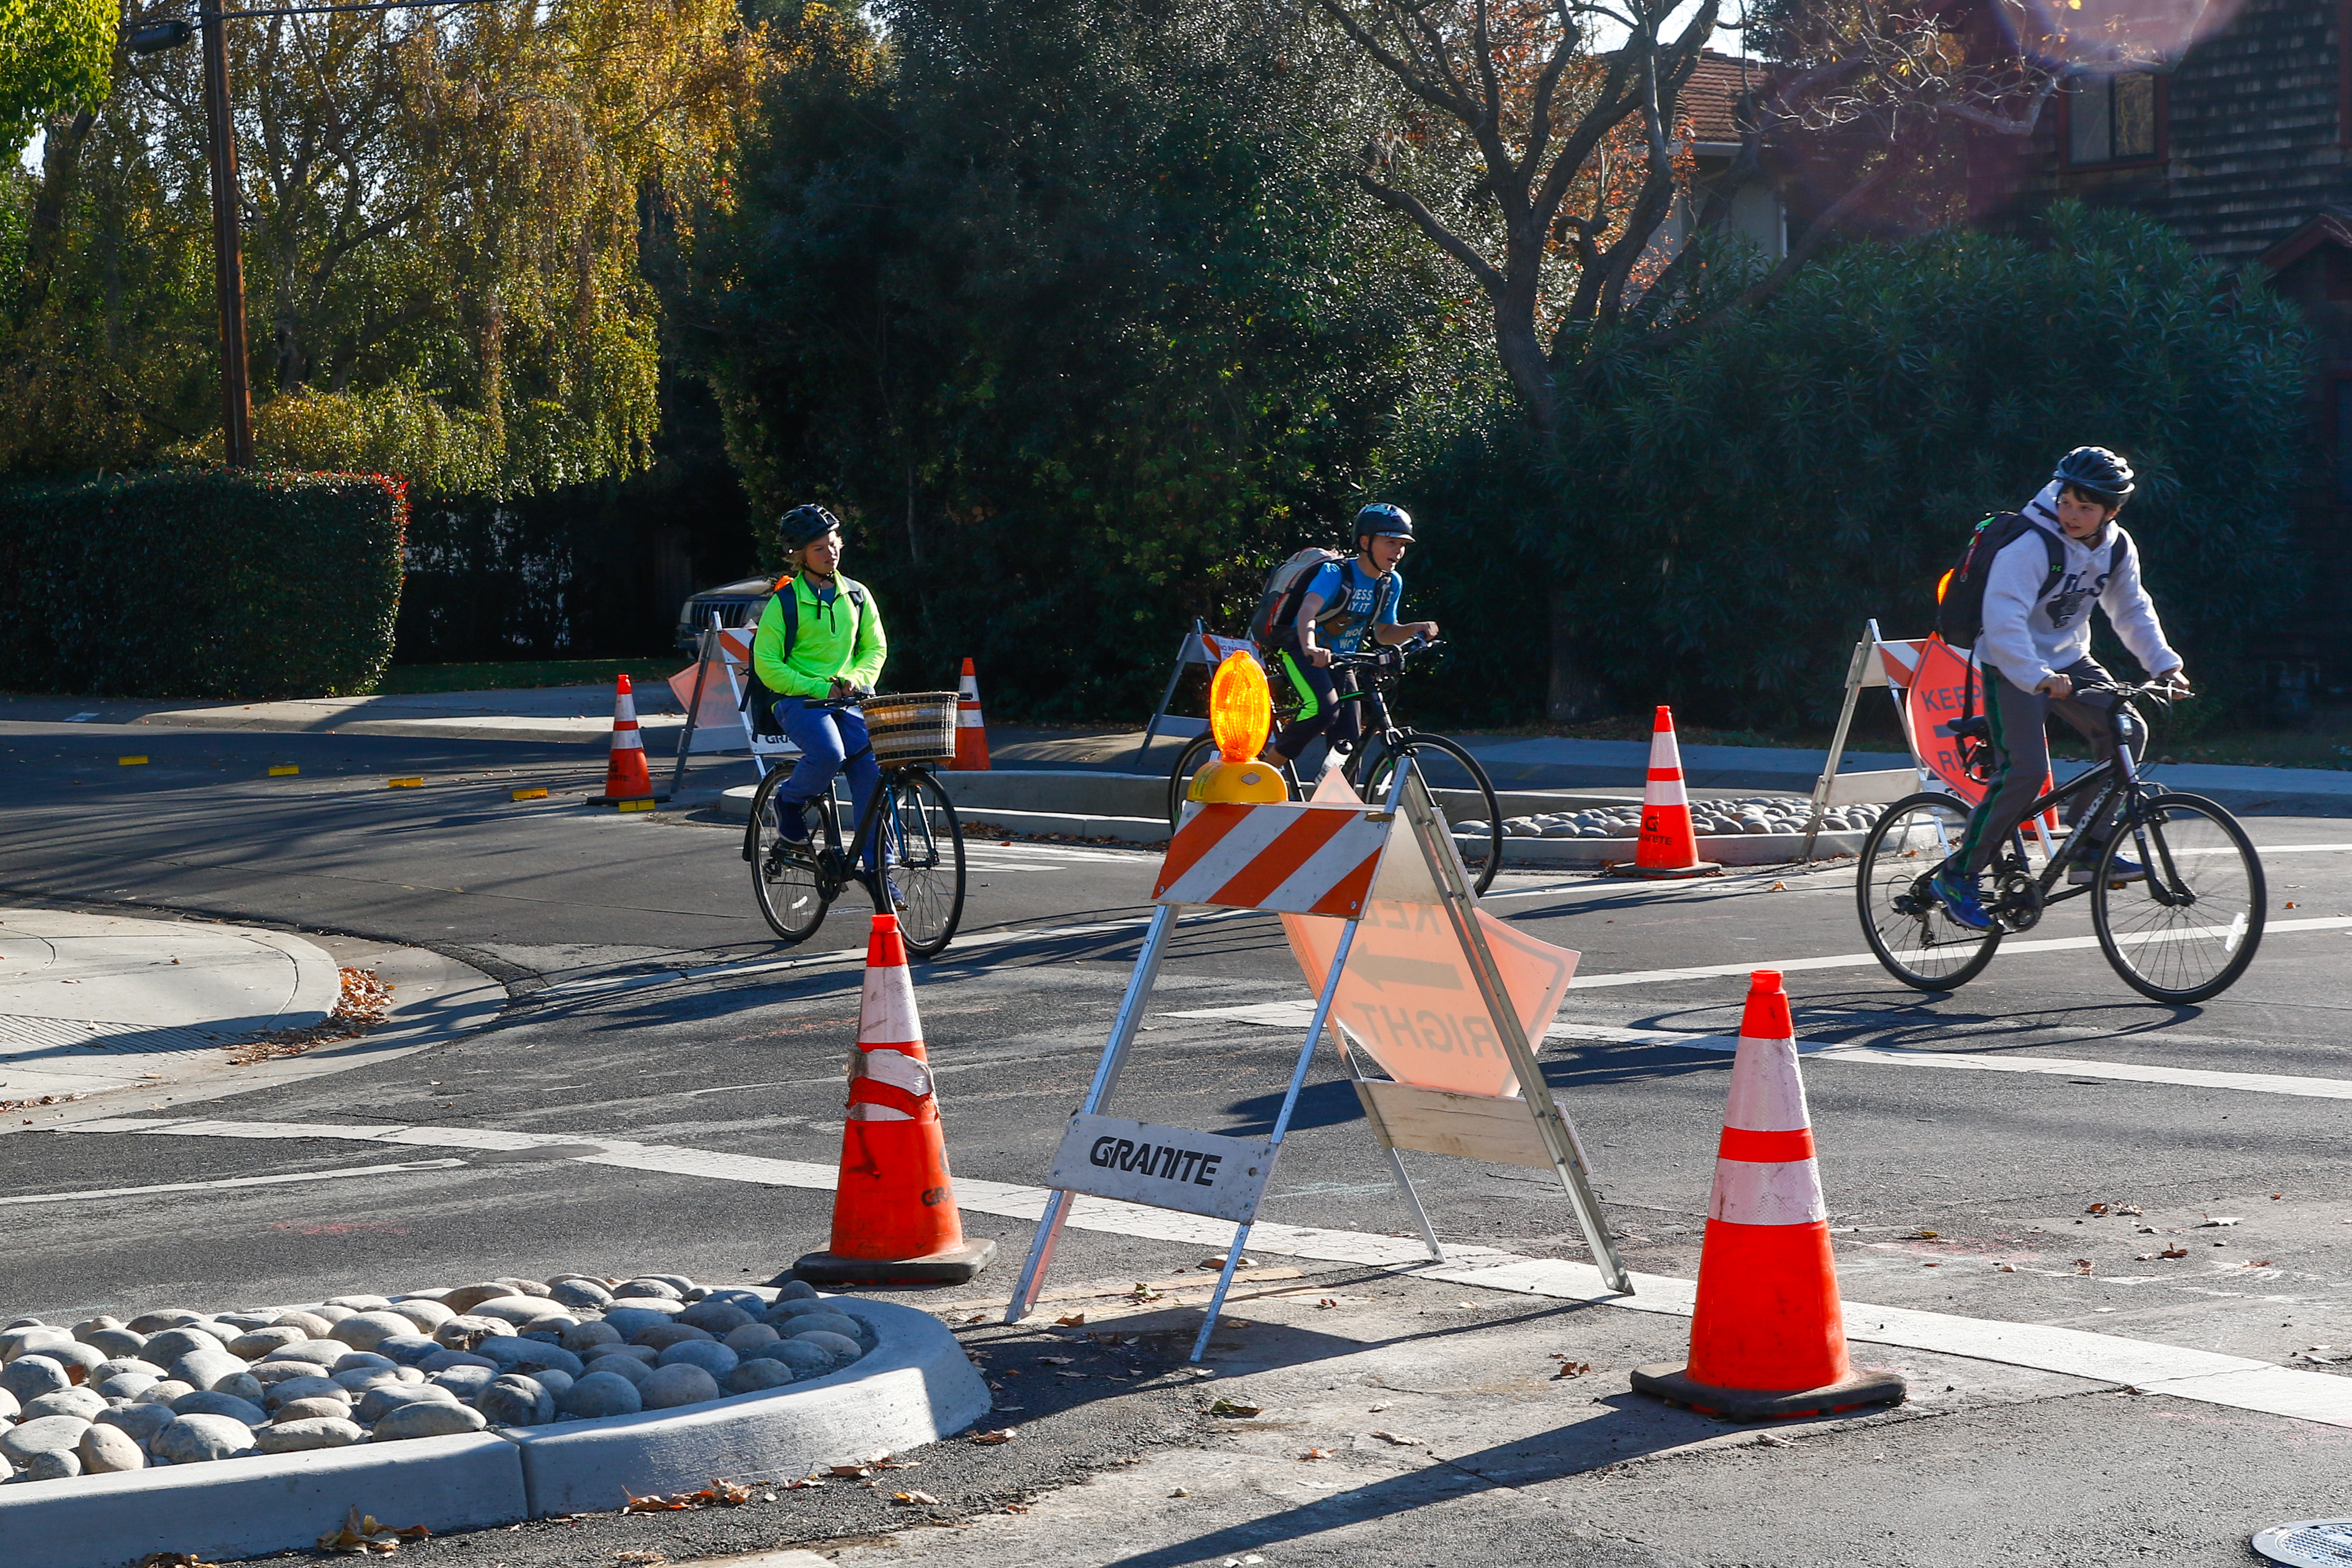 Newly constructed concrete islands have been built in the center lanes of Loma Verde Avenue and Ross Road to slow traffic. Photo by Veronica Weber.